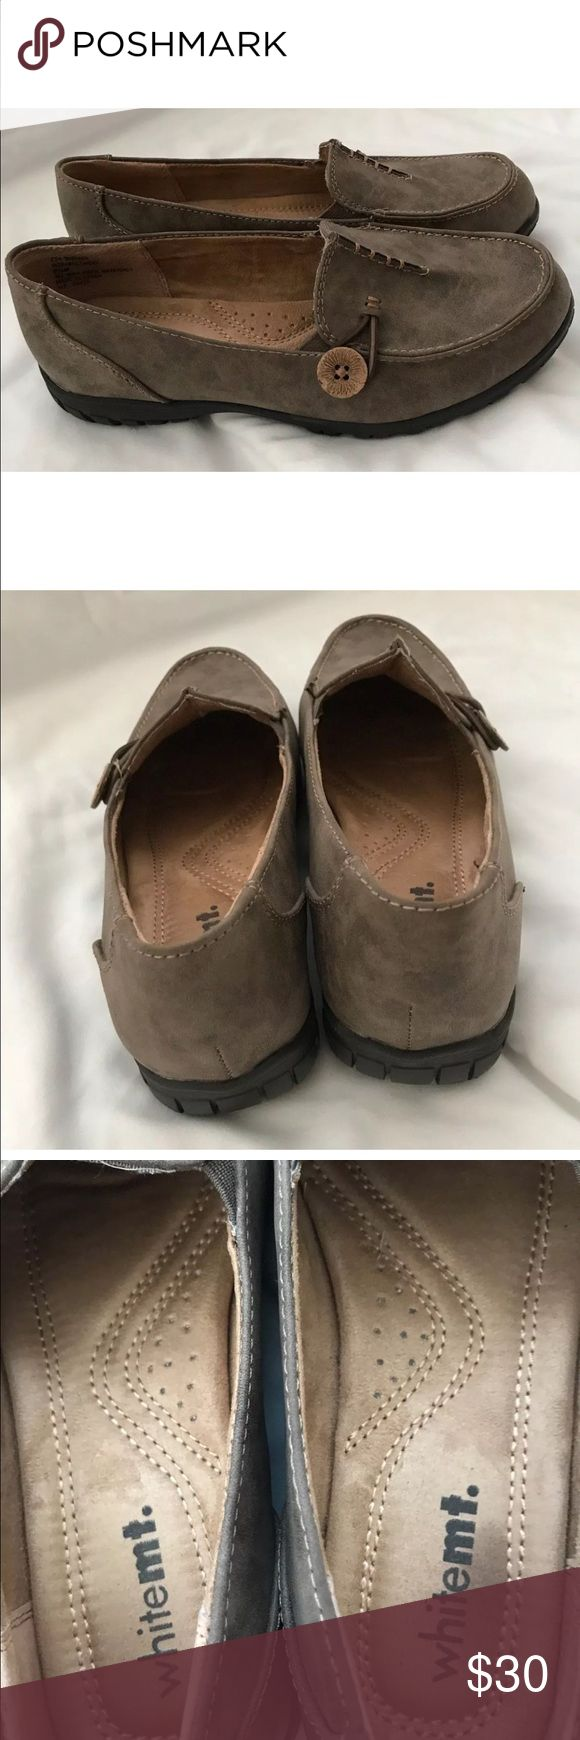 WHITEMT Women's Judo Stone Moccasins Size 6 1/2 Used in good condition.    Color: Grey.   Size 6 1/2. Shoes Moccasins